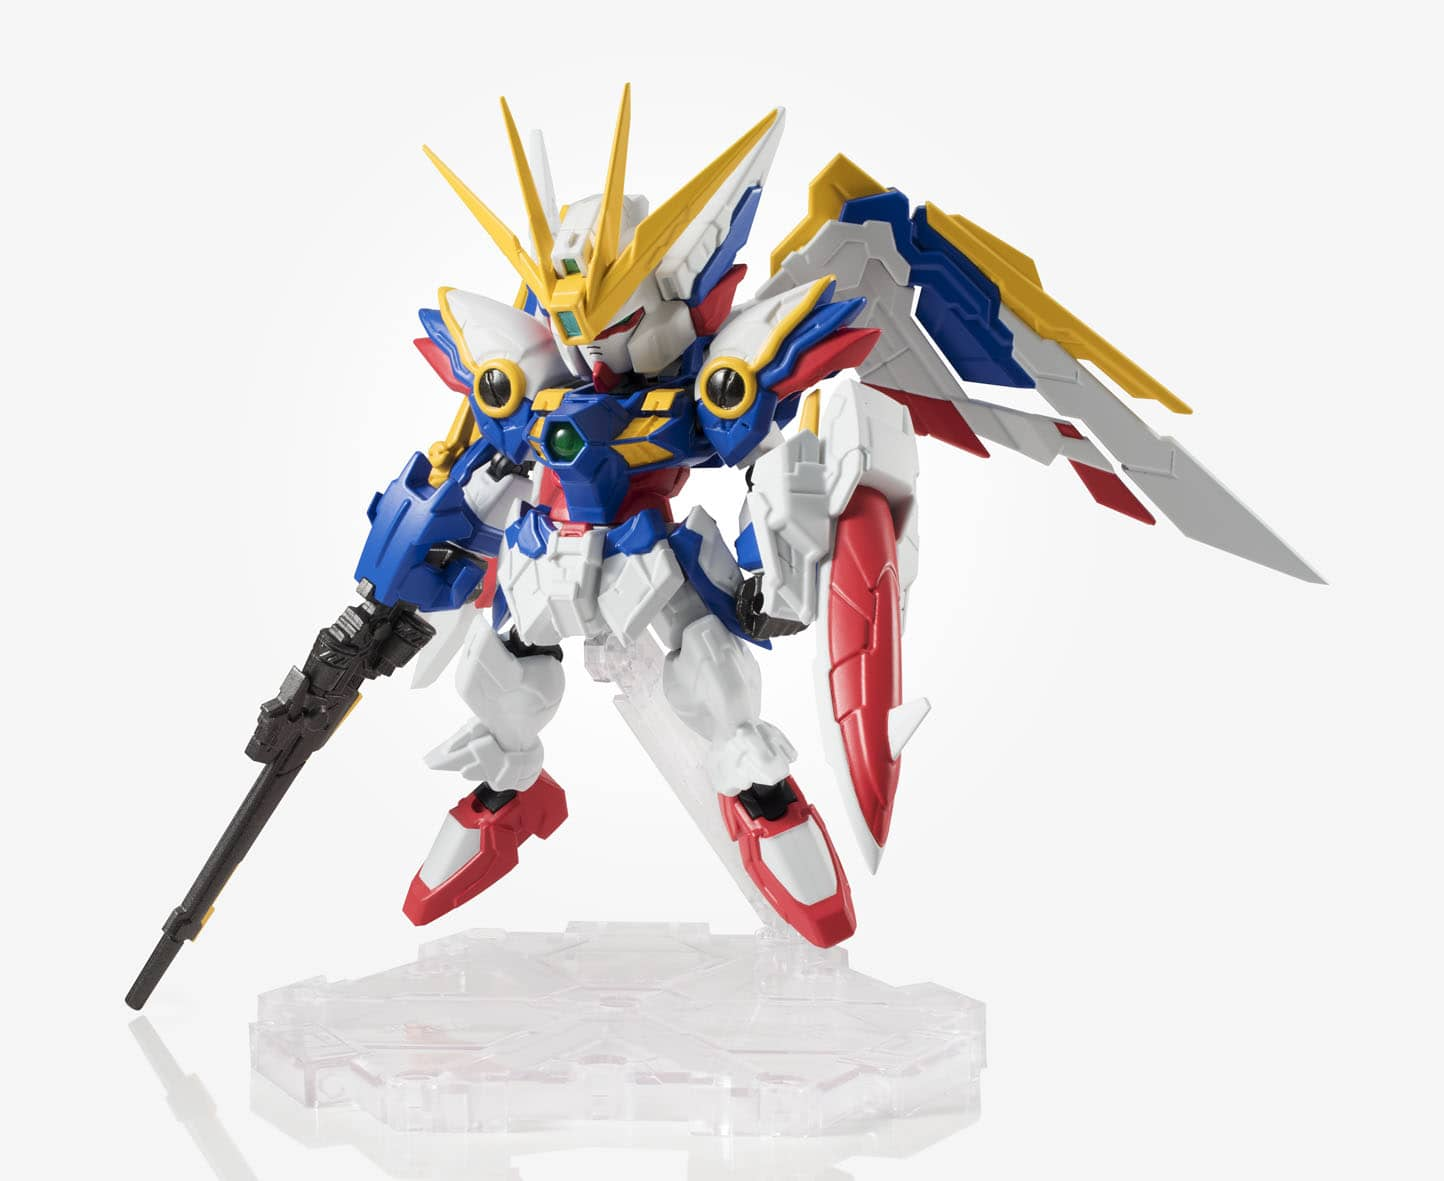 MS WING GUNDAM FIGURA 10 CM MOBILE SUIT GUNDAM W ENDLESS WALTZ NXEDGE STYLE